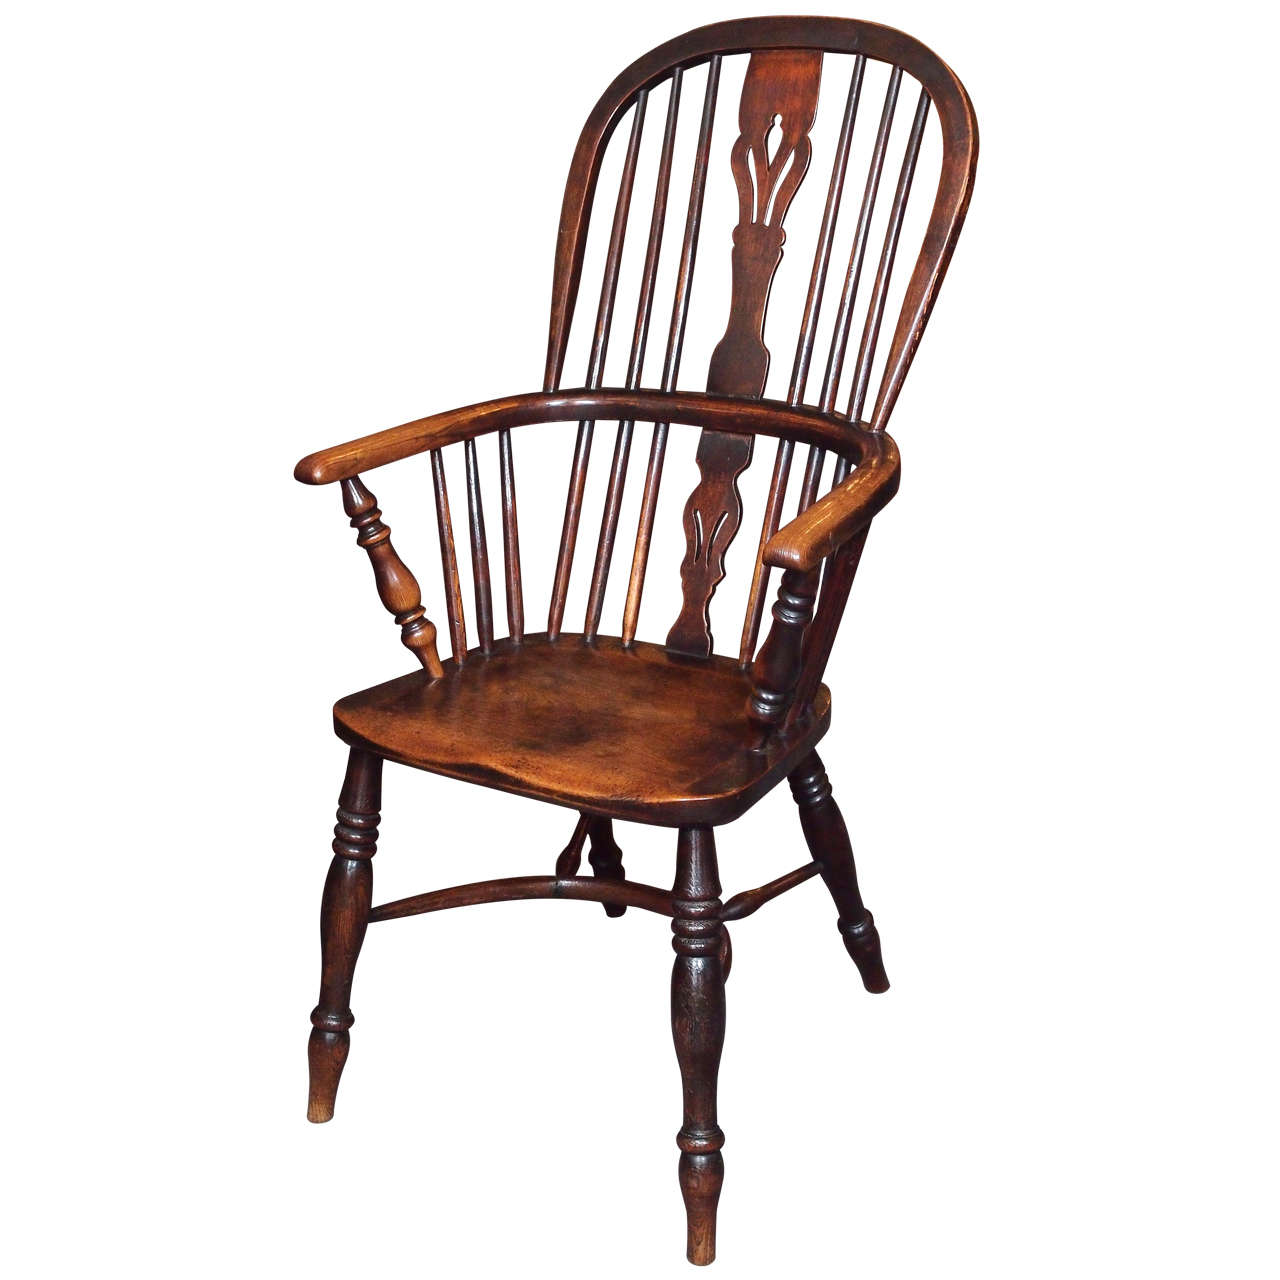 Antique English elm and ash Windsor chair with crinoline stretcher. 1 - Antique English Elm And Ash Windsor Chair With Crinoline Stretcher